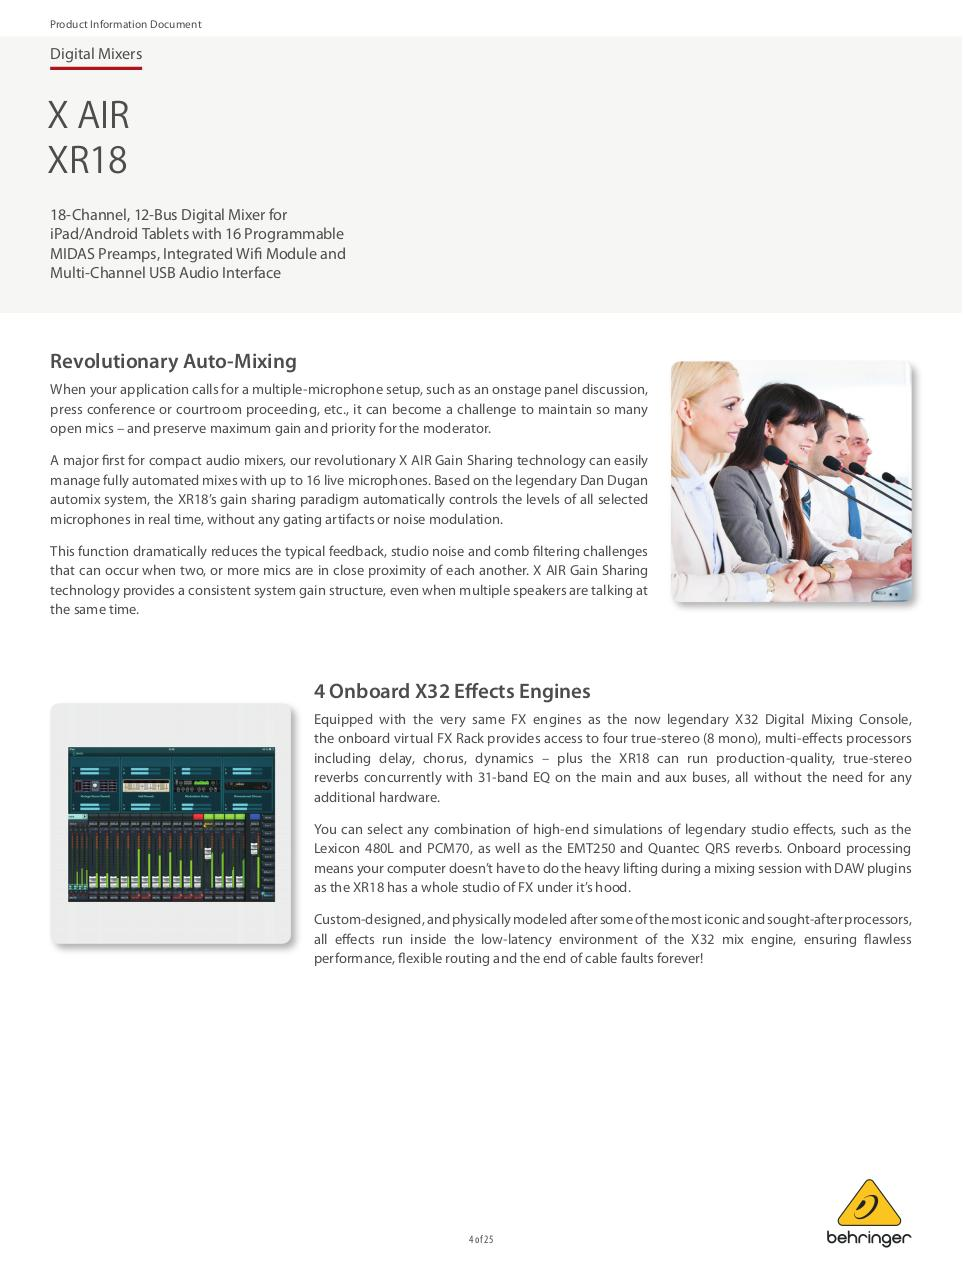 BEHRINGER_XR18 P0BI8_Product Information Document.pdf - page 4/25